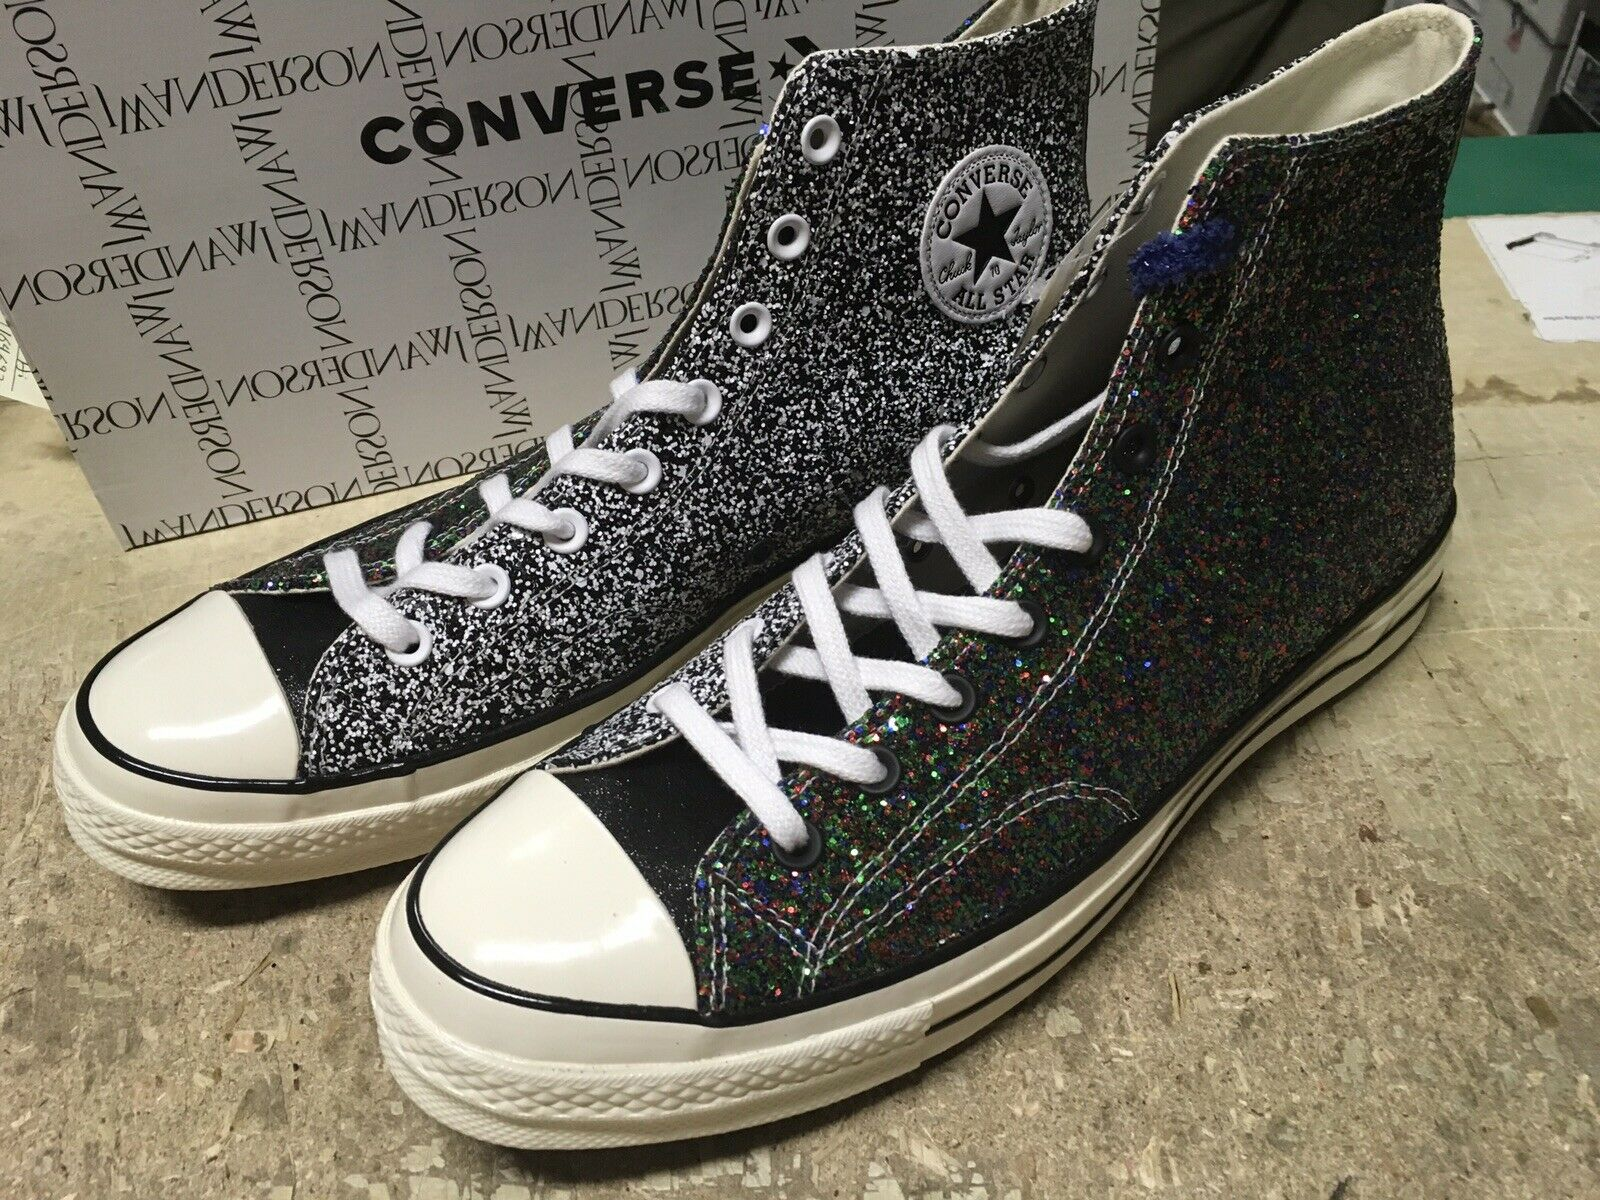 Converse Chuck Taylor All Star 70s Hi JW Anderson Glitter Multi Color